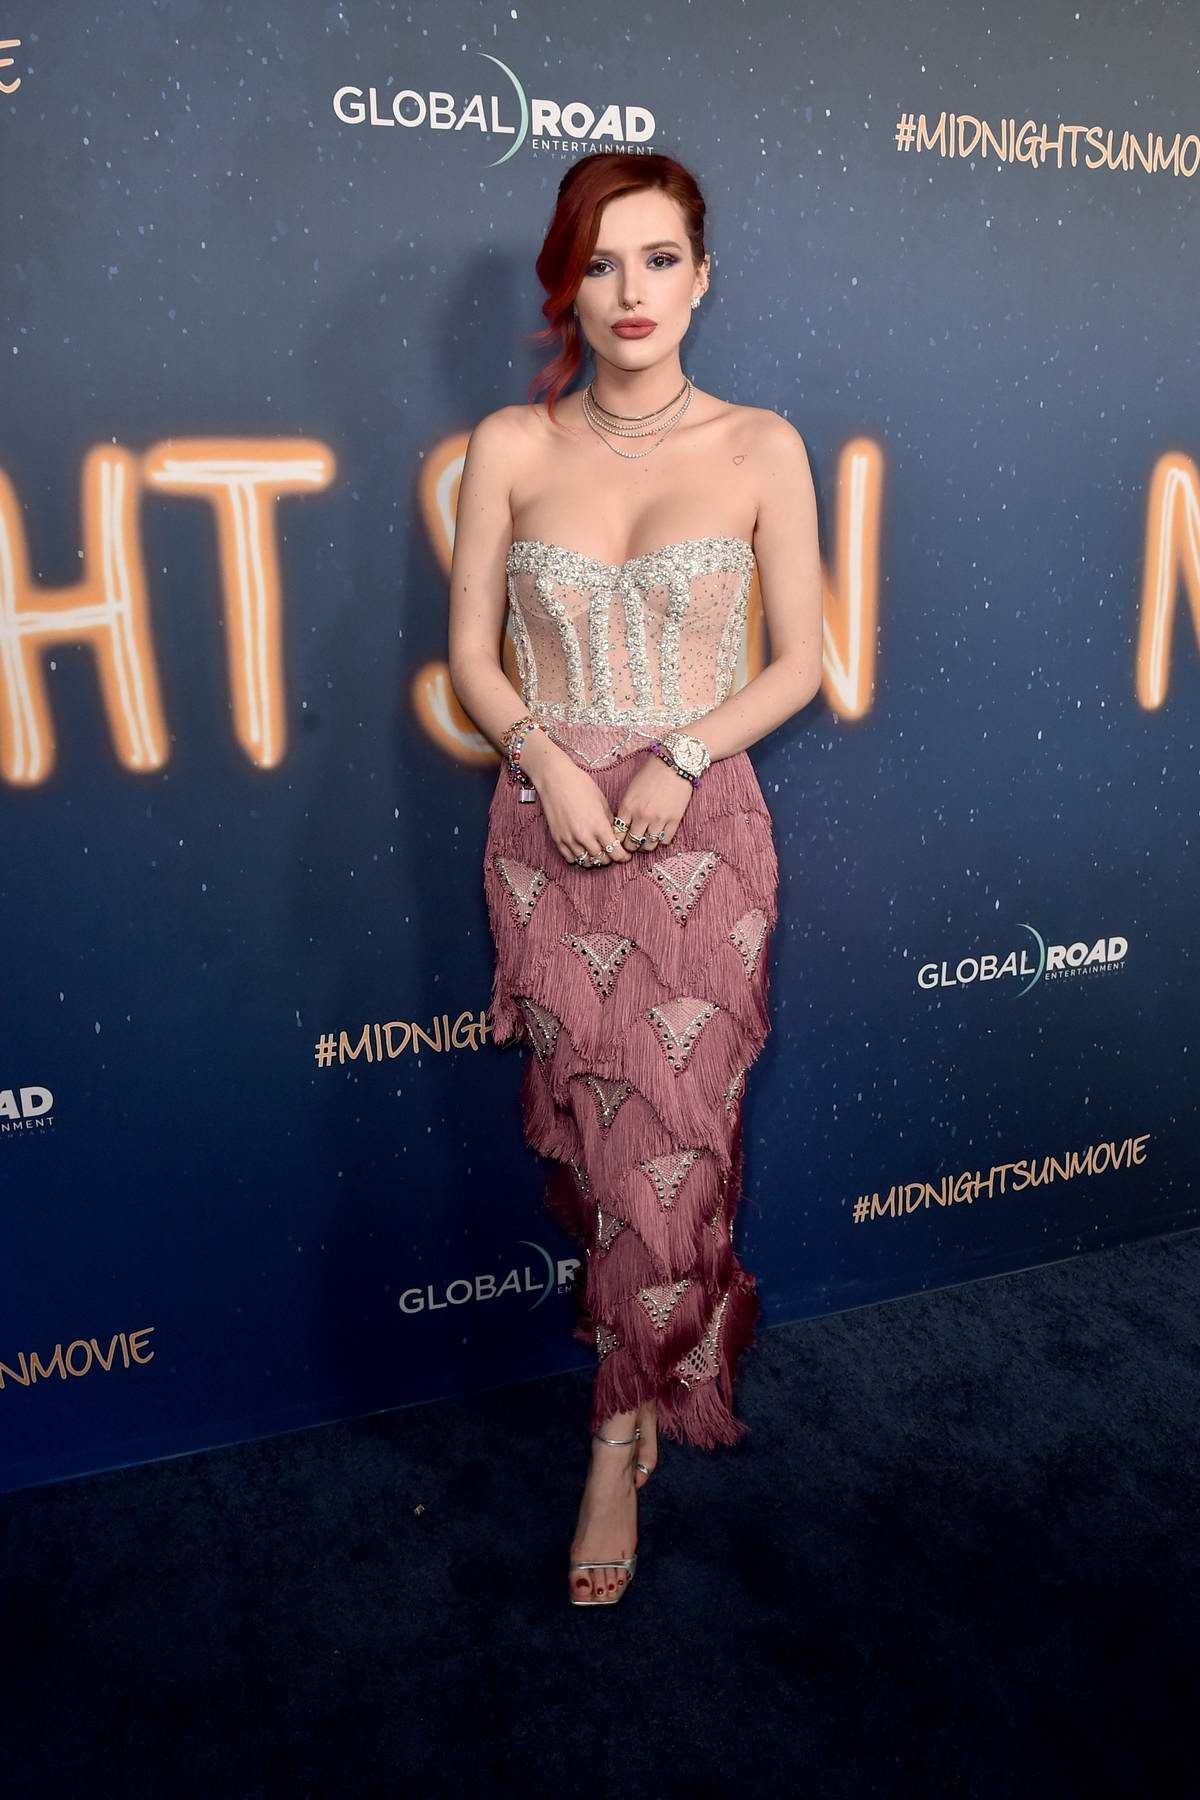 Bella Thorne attends the premiere of 'Midnight Sun' in Los Angeles